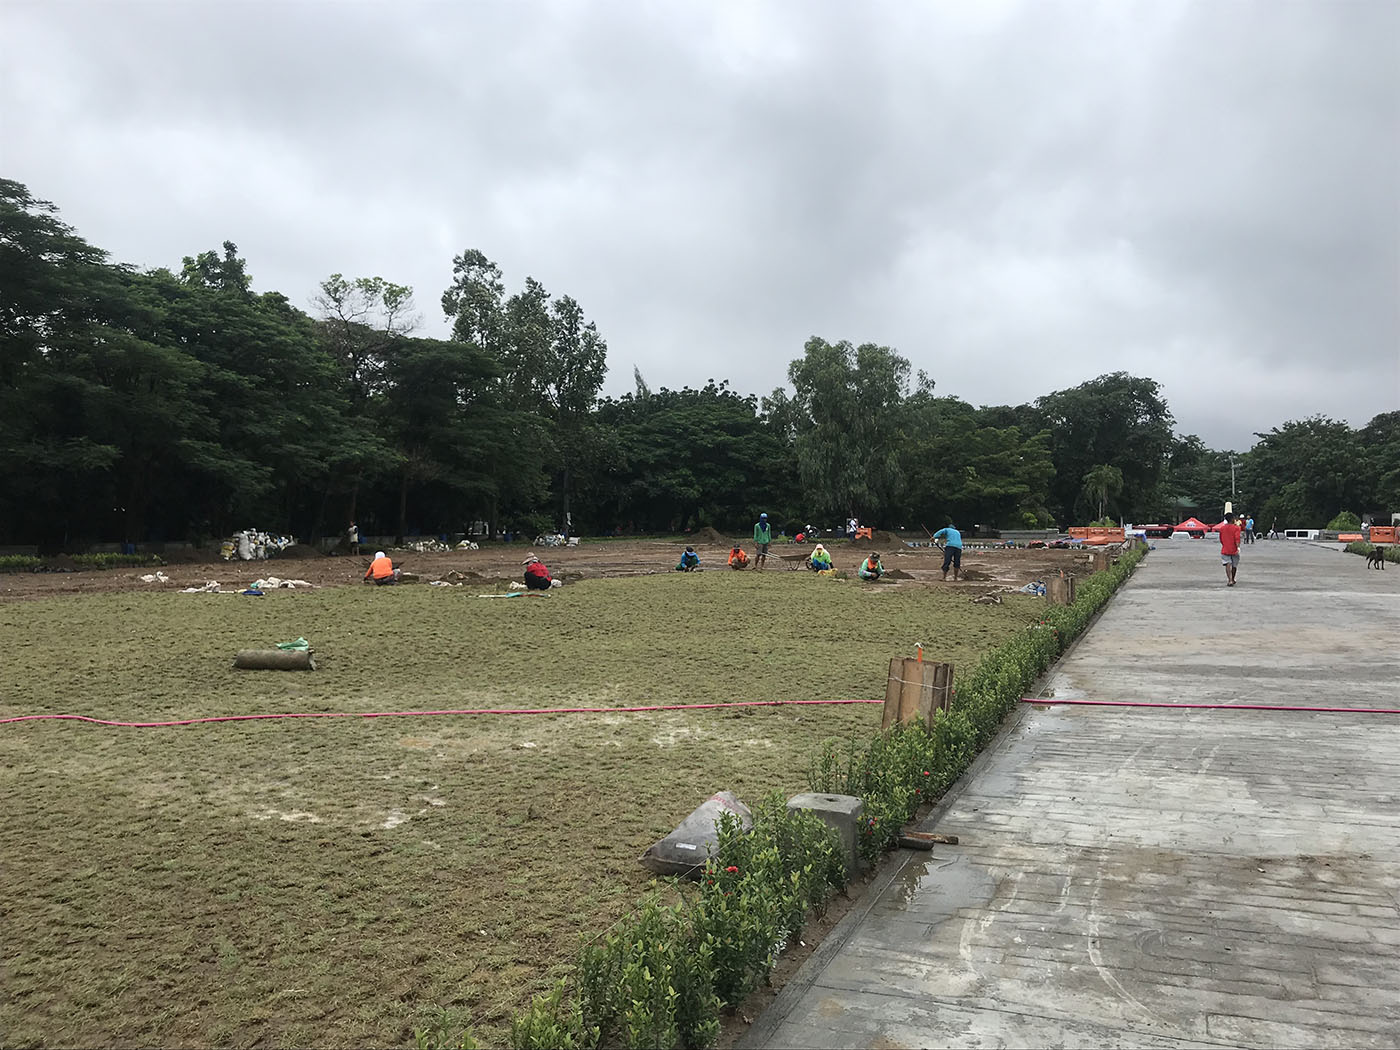 Workers can be seen putting carabao grass on the soil on either side of the central walkway.